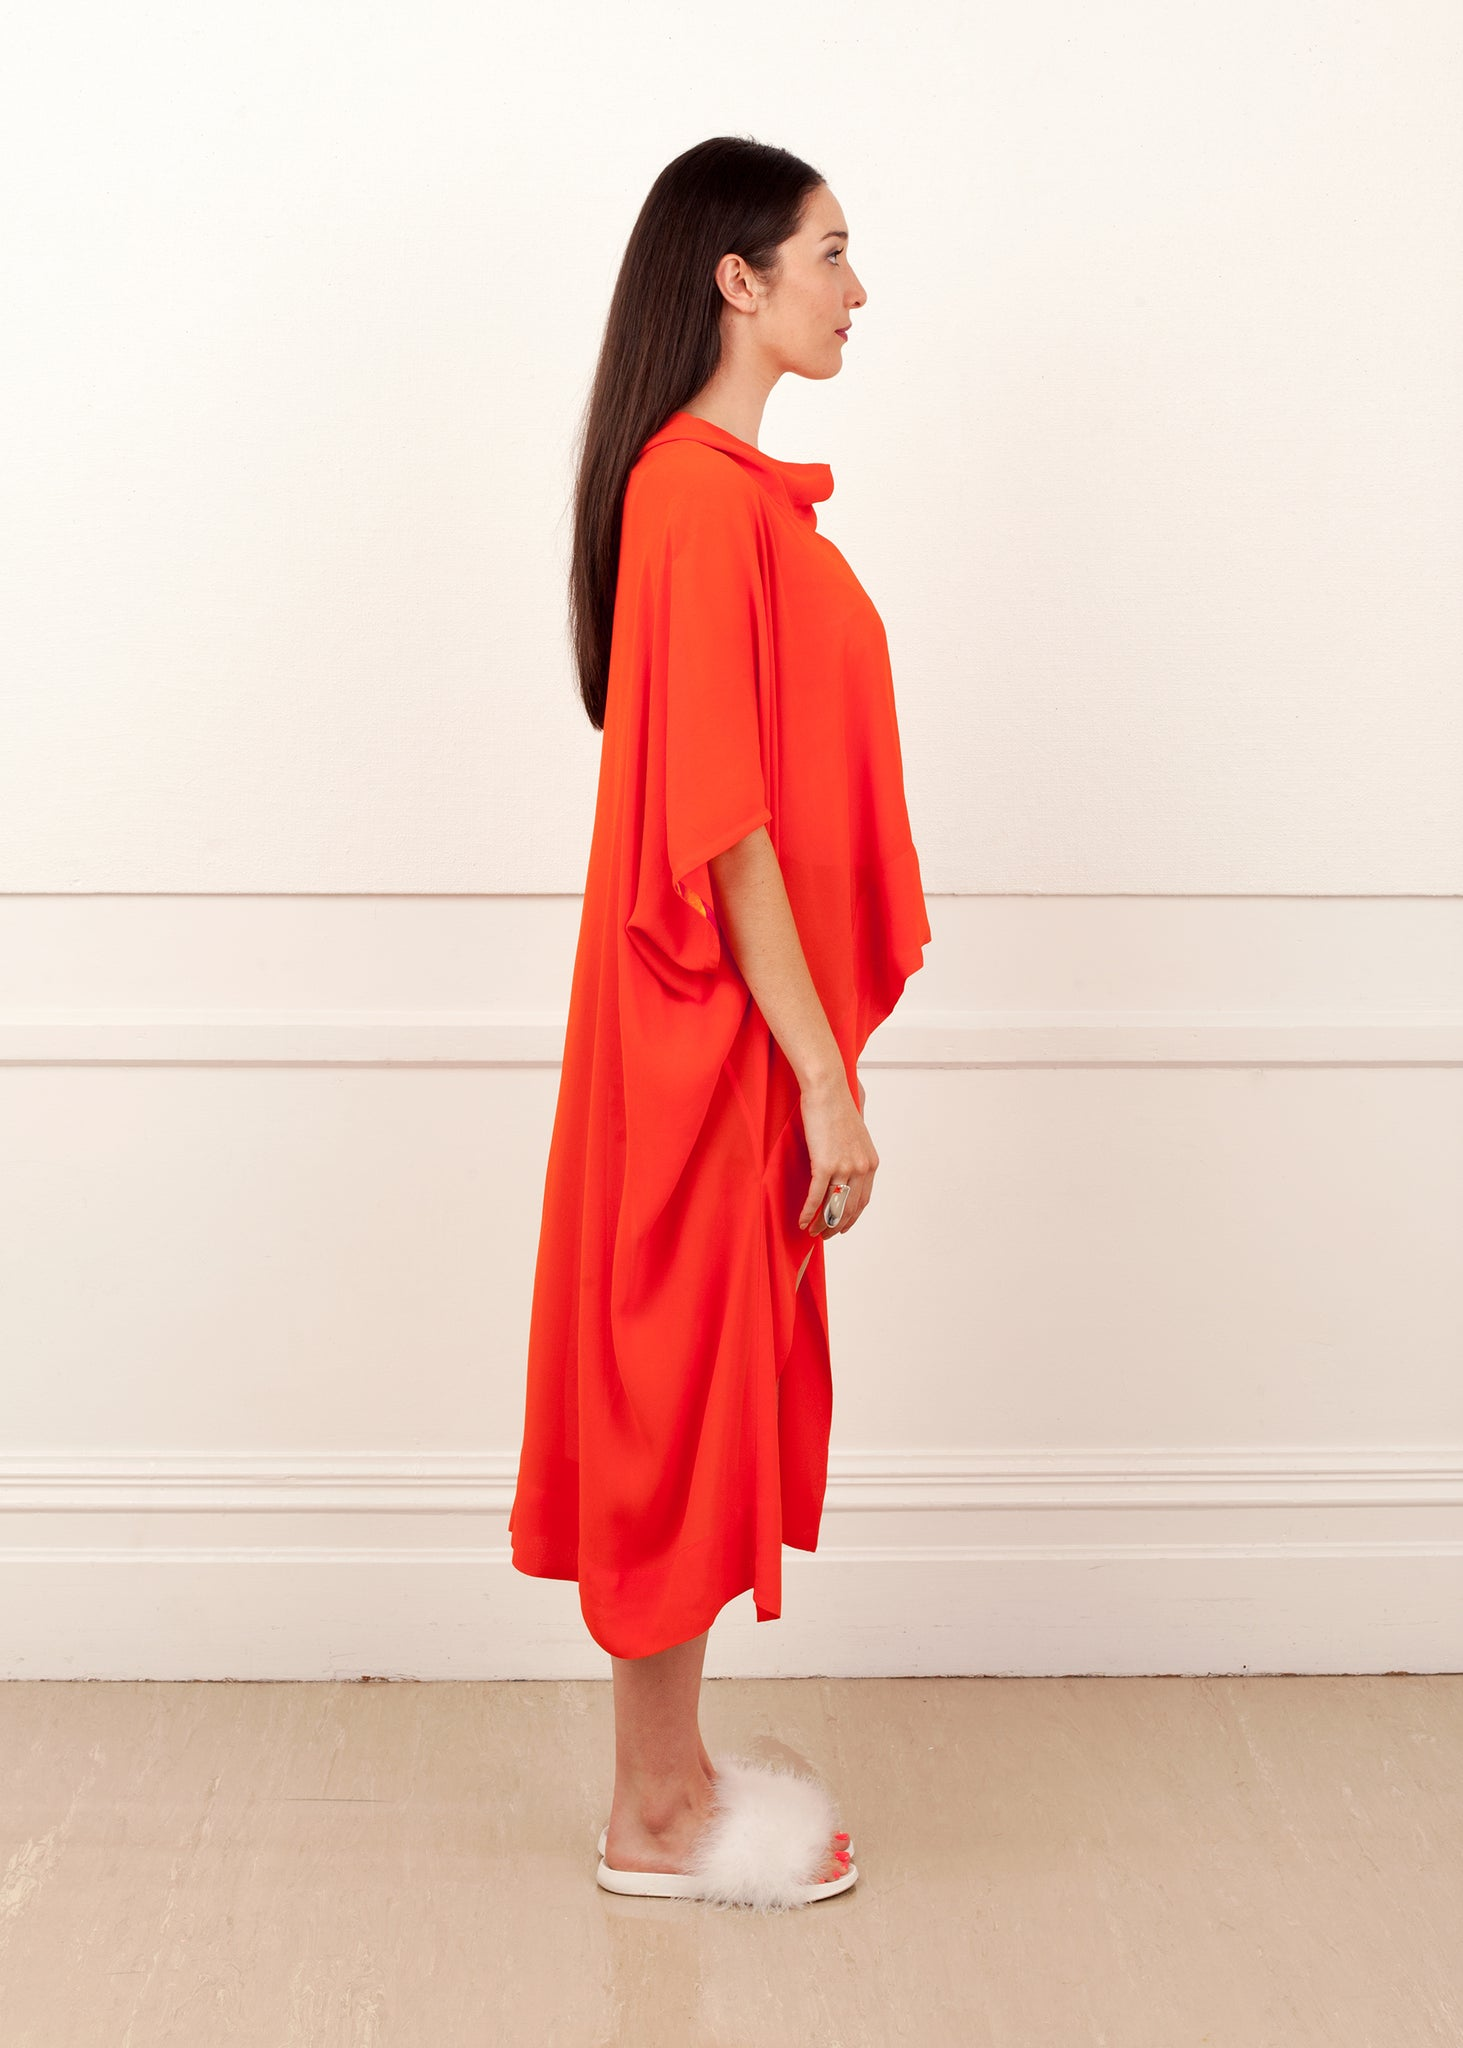 Fraser Crowe It's All Academic Top Orange, ethical fashion, sustainable fashion, designer clothes, plus size clothing, textile print clothing, luxury online fashion, slow fashion